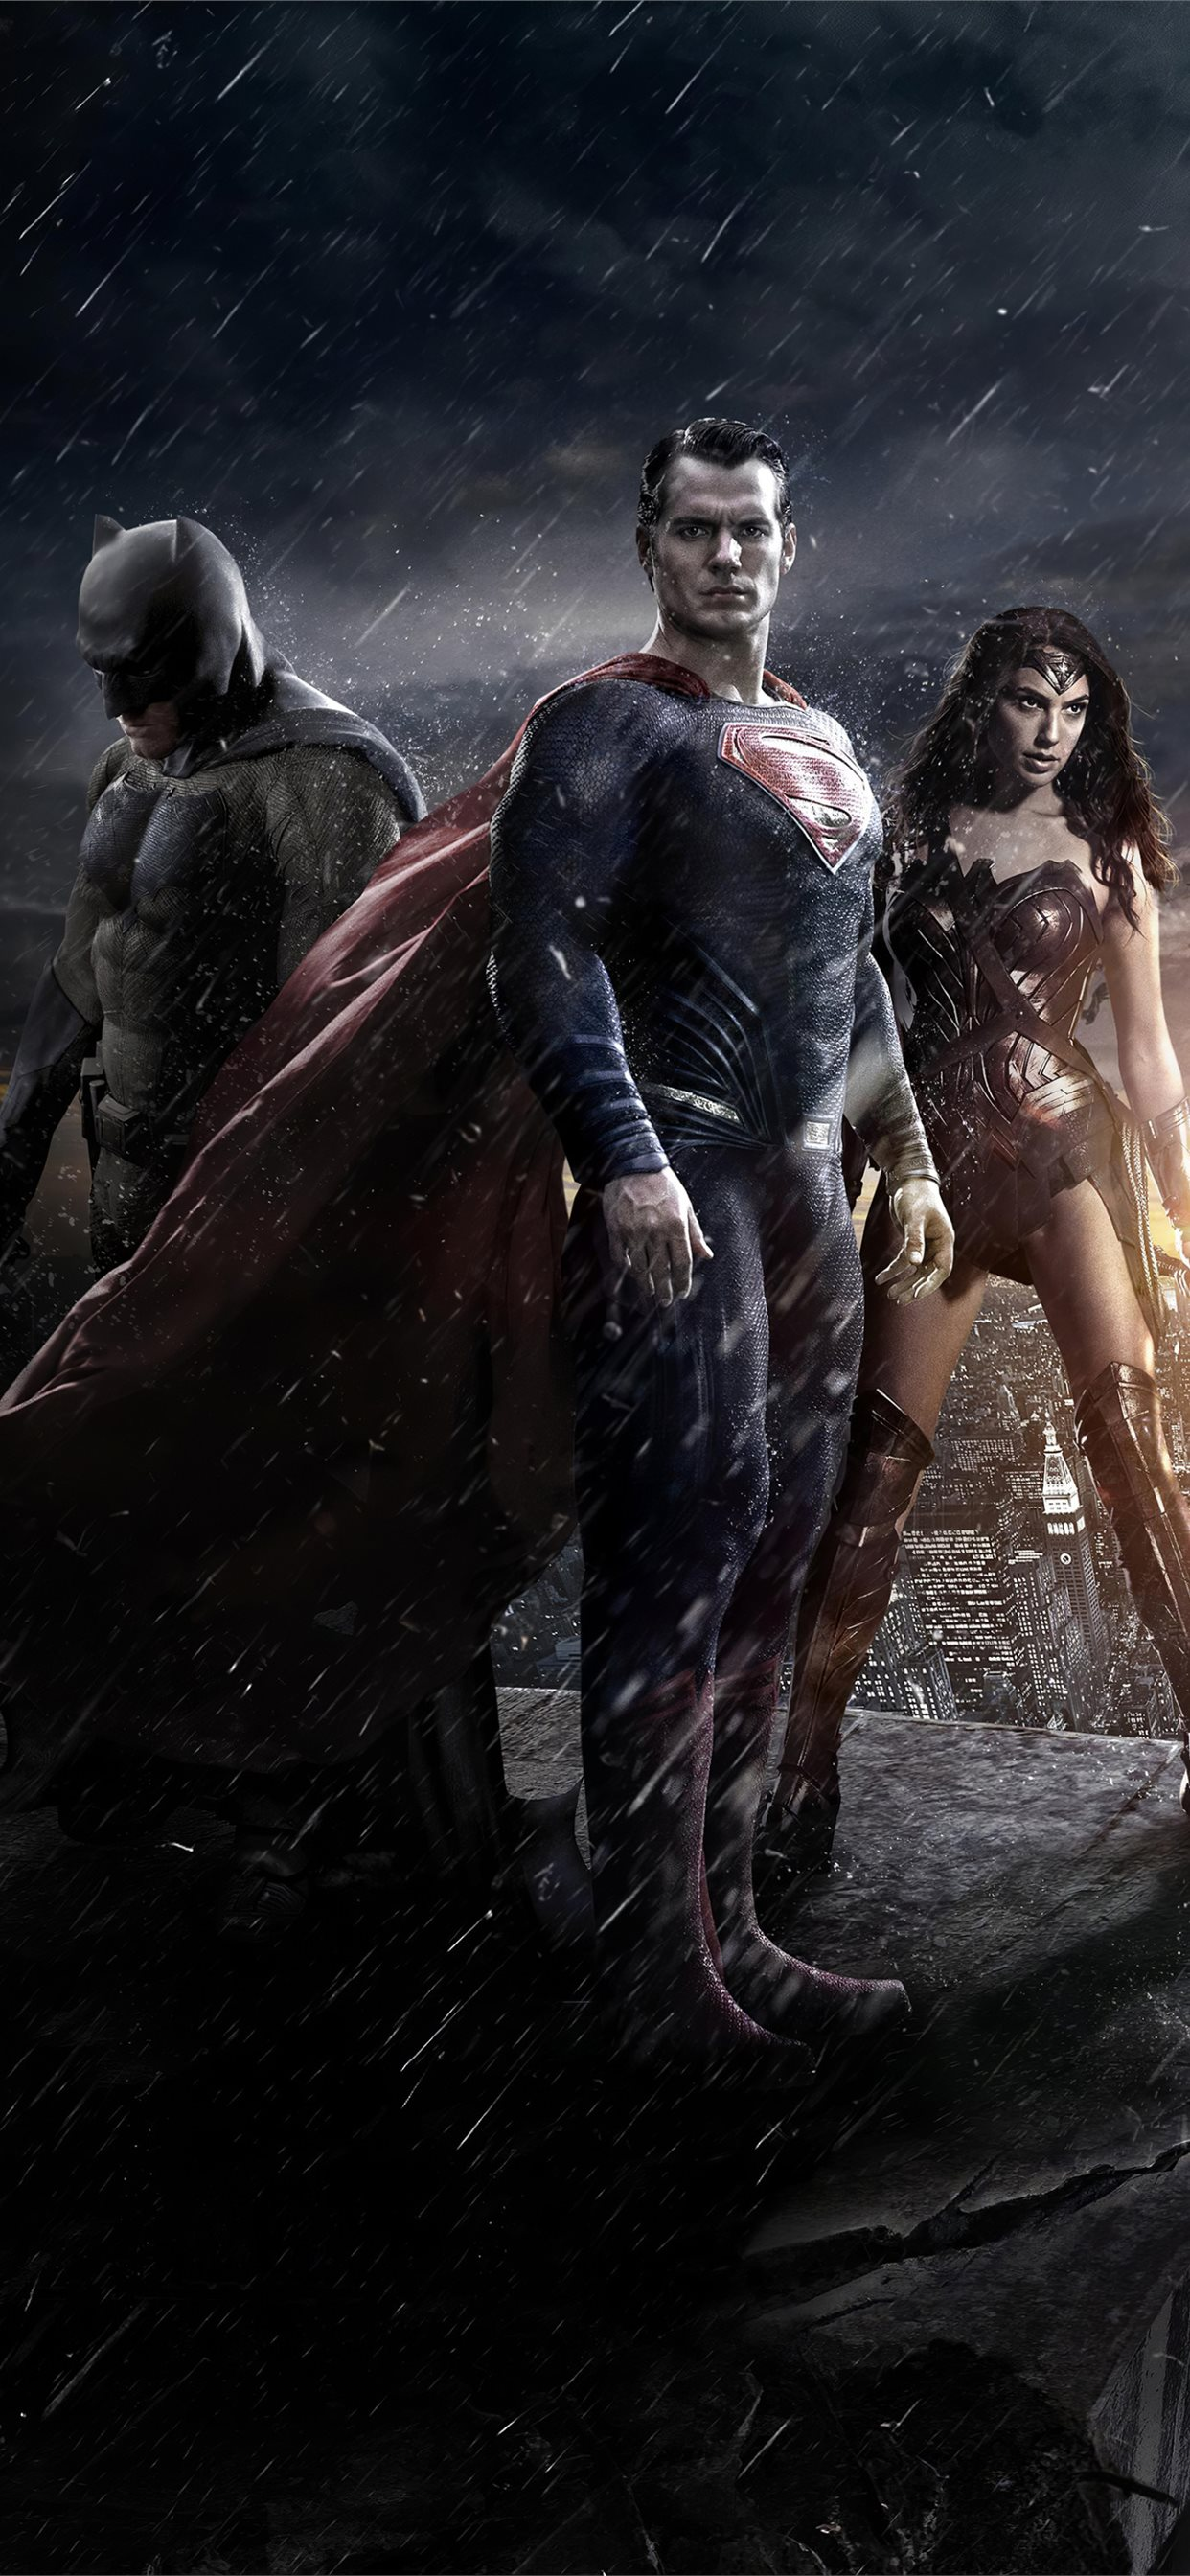 Batman V Superman Movie Poster Iphone Wallpapers Free Download